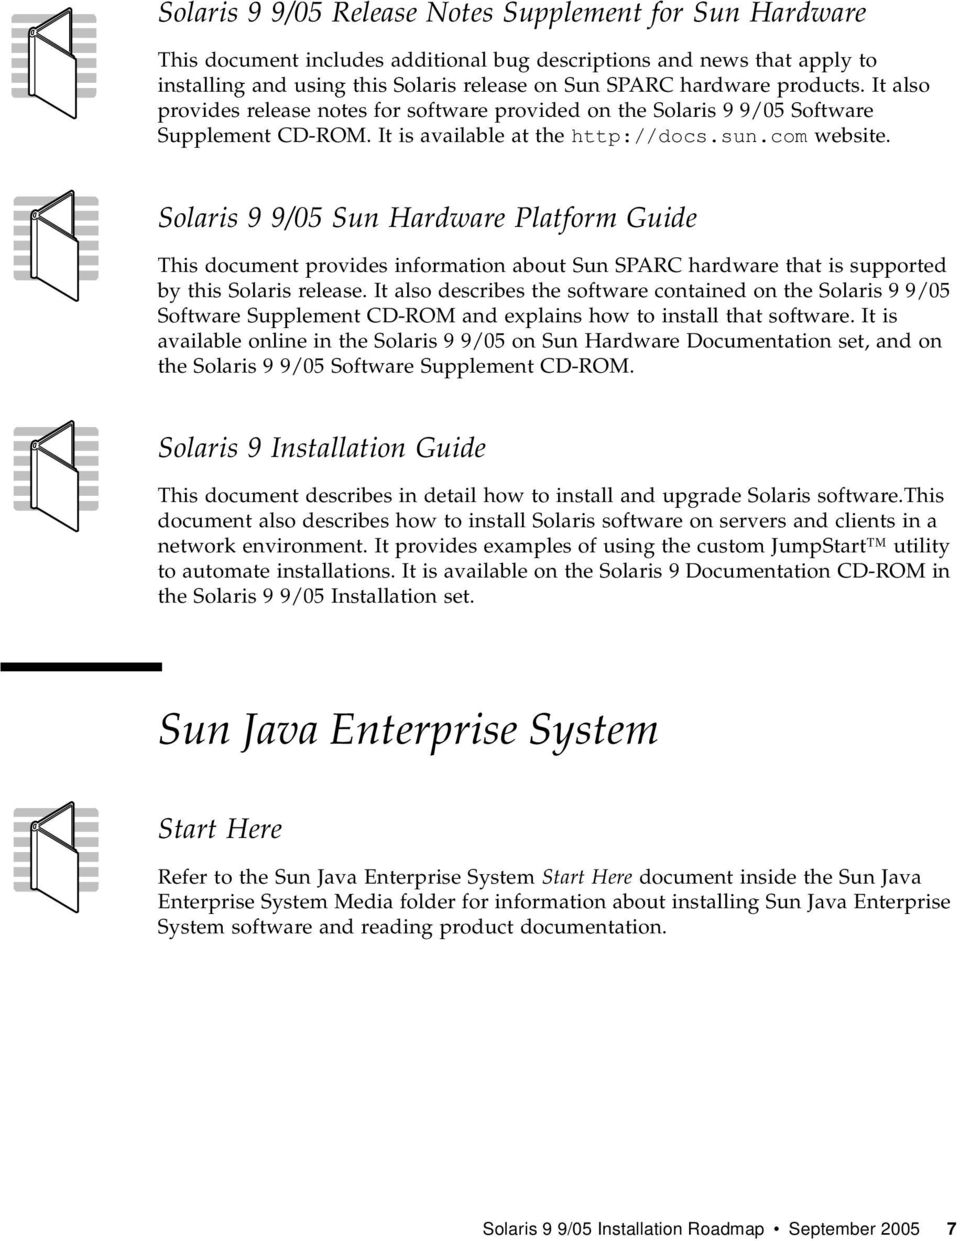 Solaris 9 9/05 Sun Hardware Platform Guide This document provides information about Sun SPARC hardware that is supported by this Solaris release.